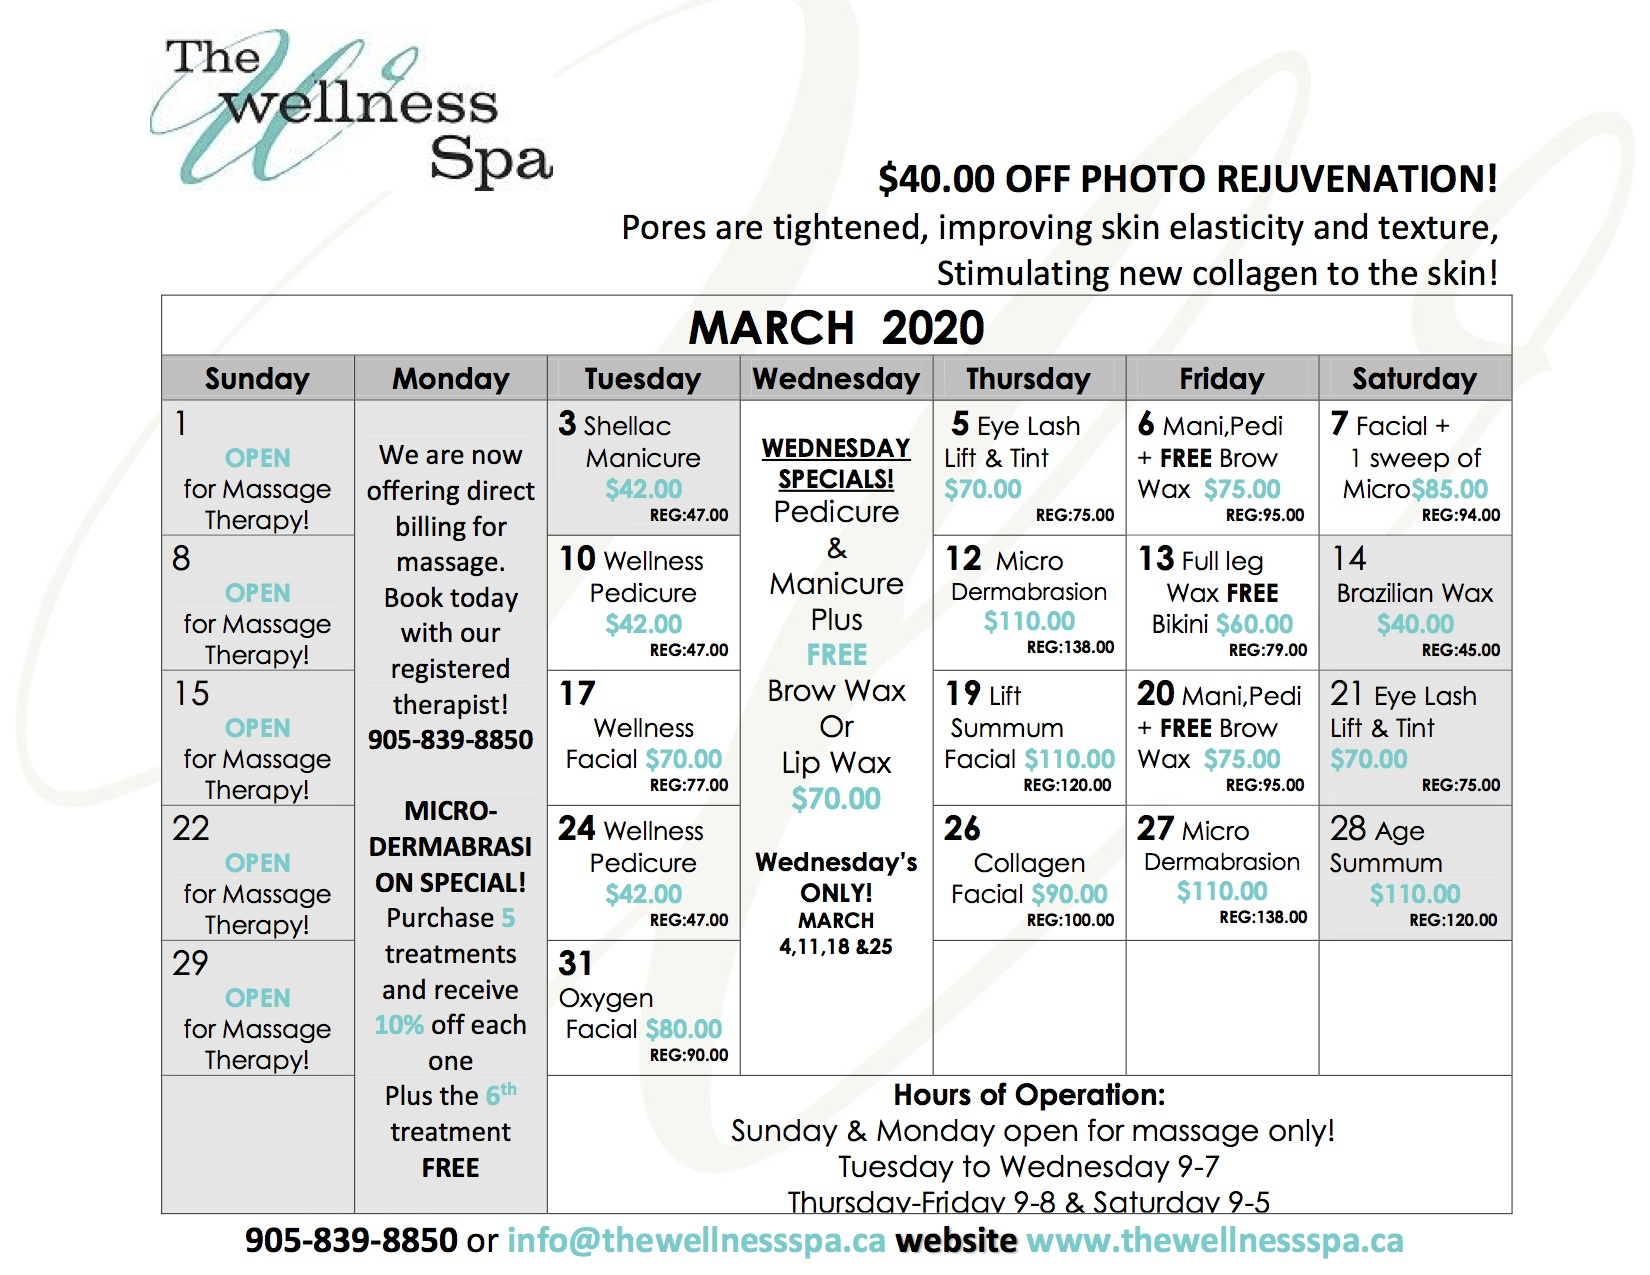 March Daily Spa Deals for the Wellness Spa in Pickering